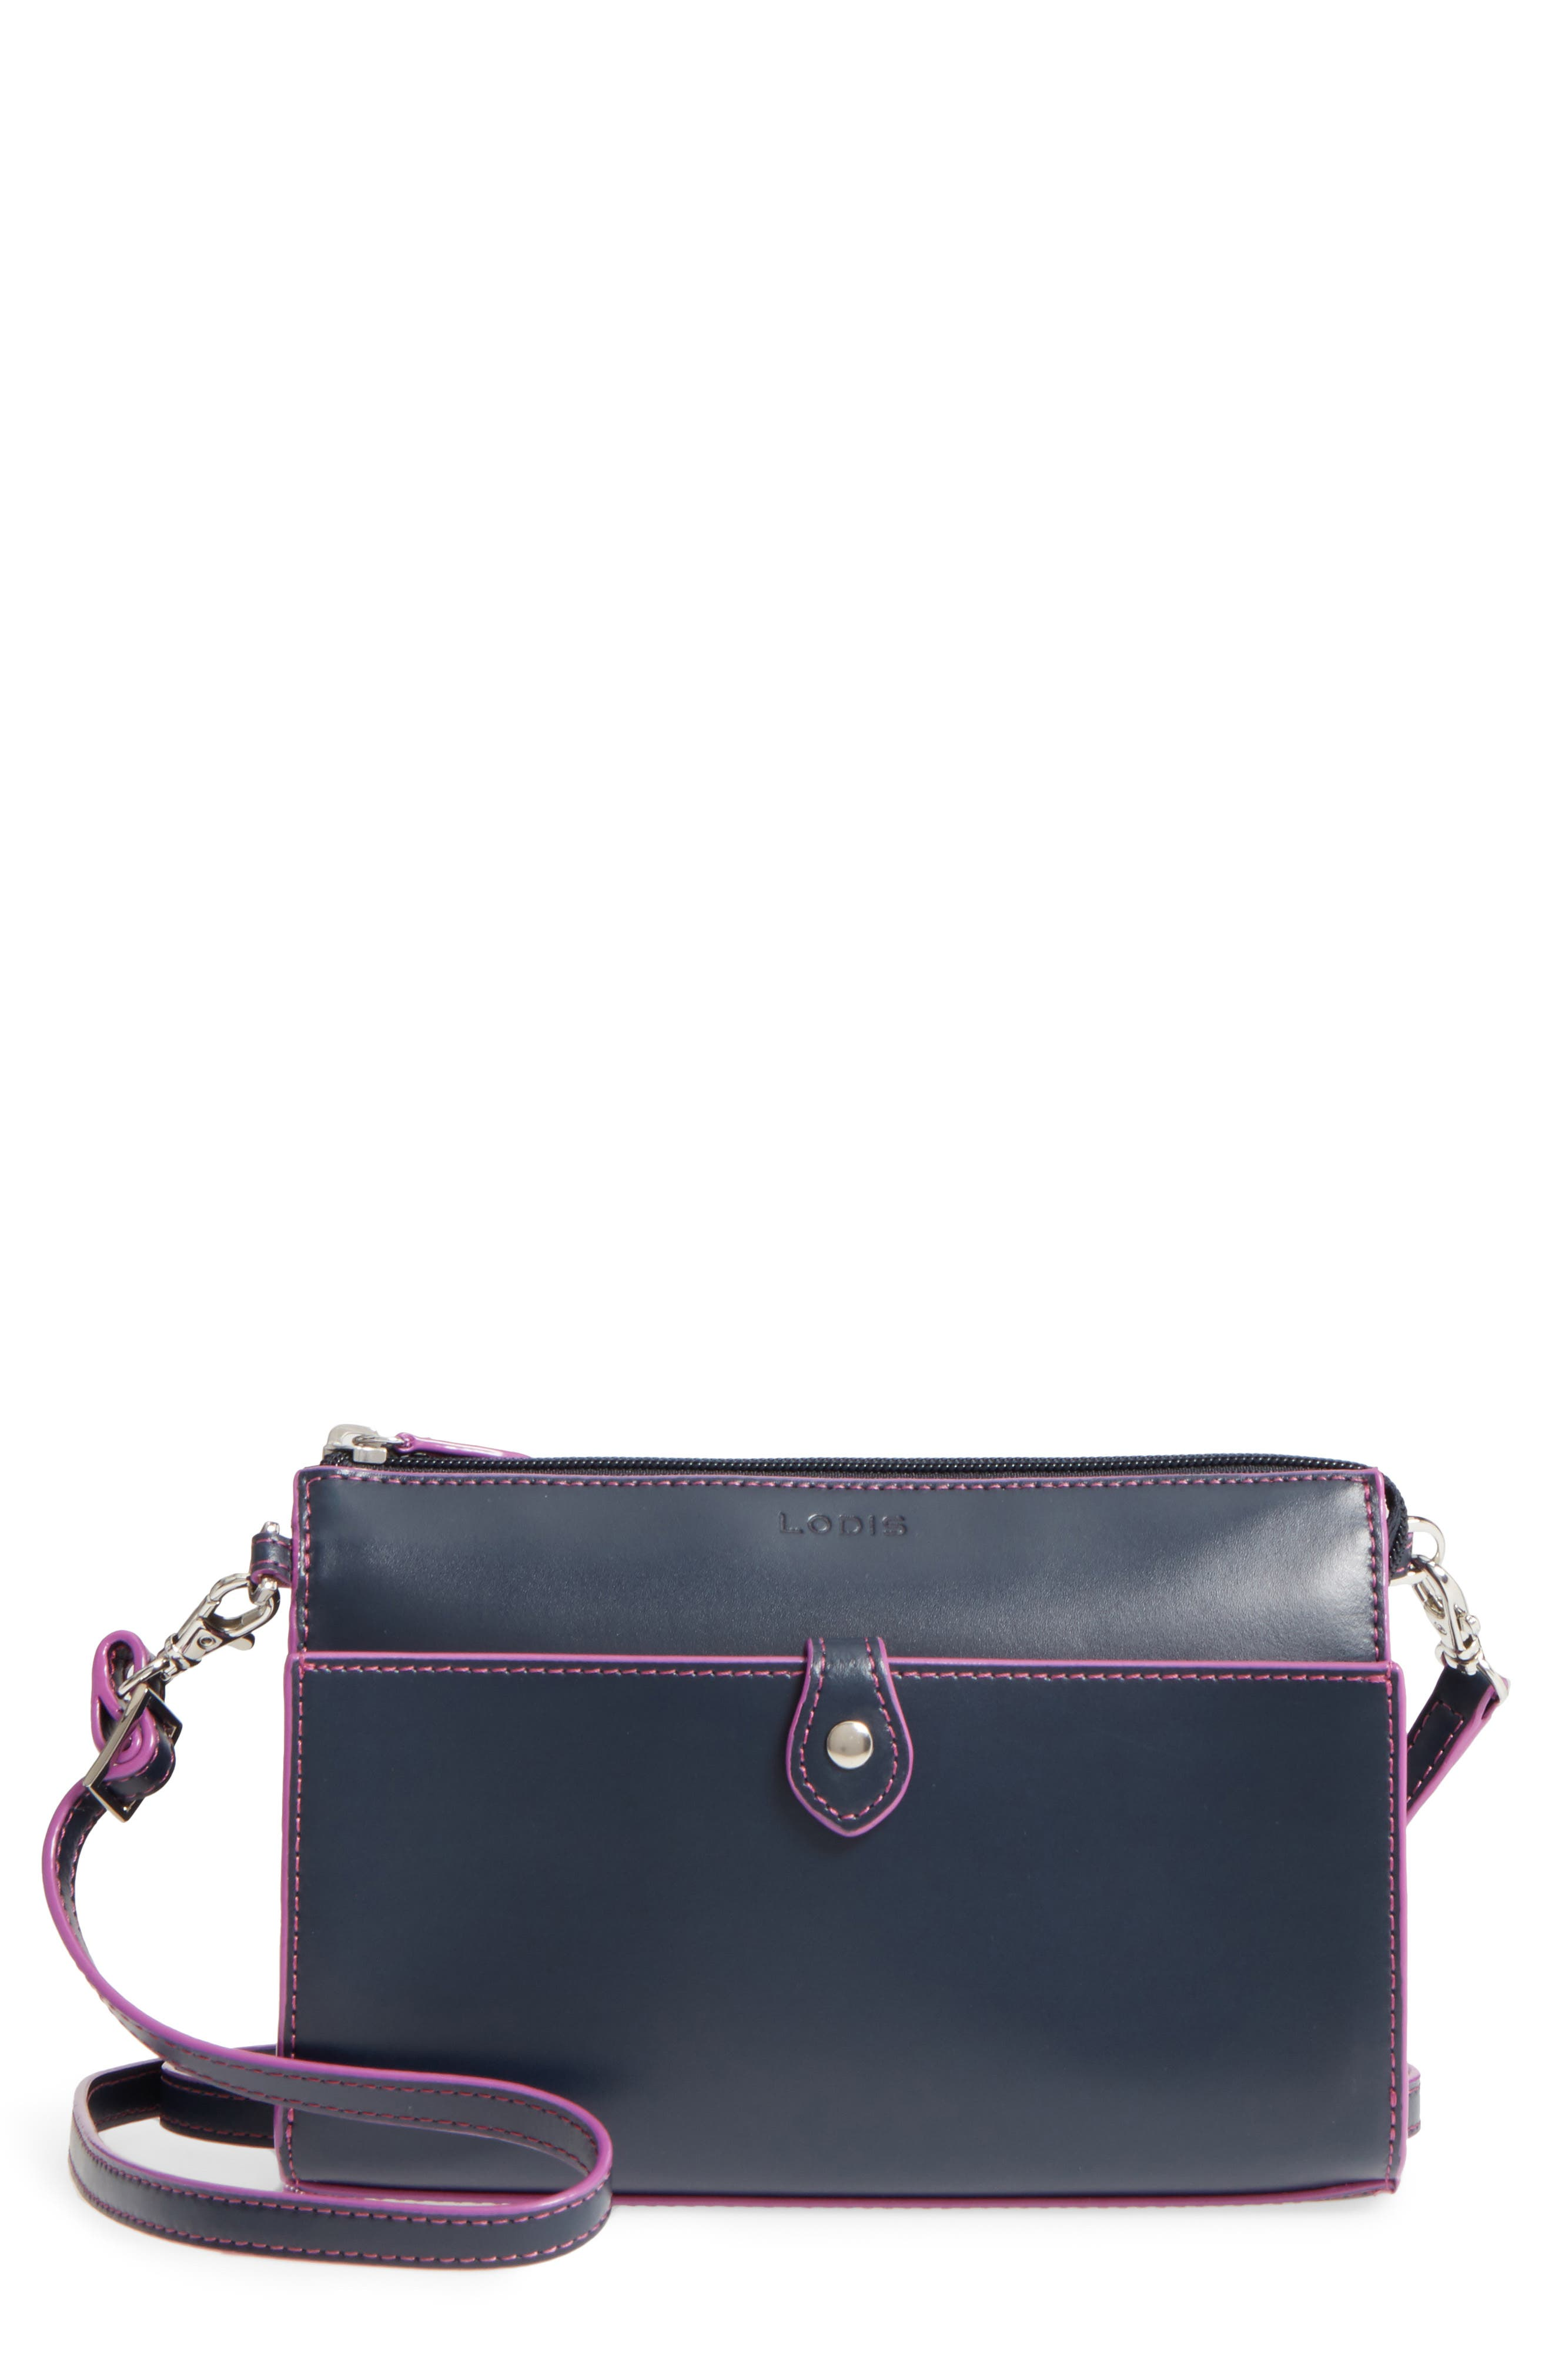 Lodis Audrey Under Lock & Key Vicky Convertible Leather Crossbody Bag